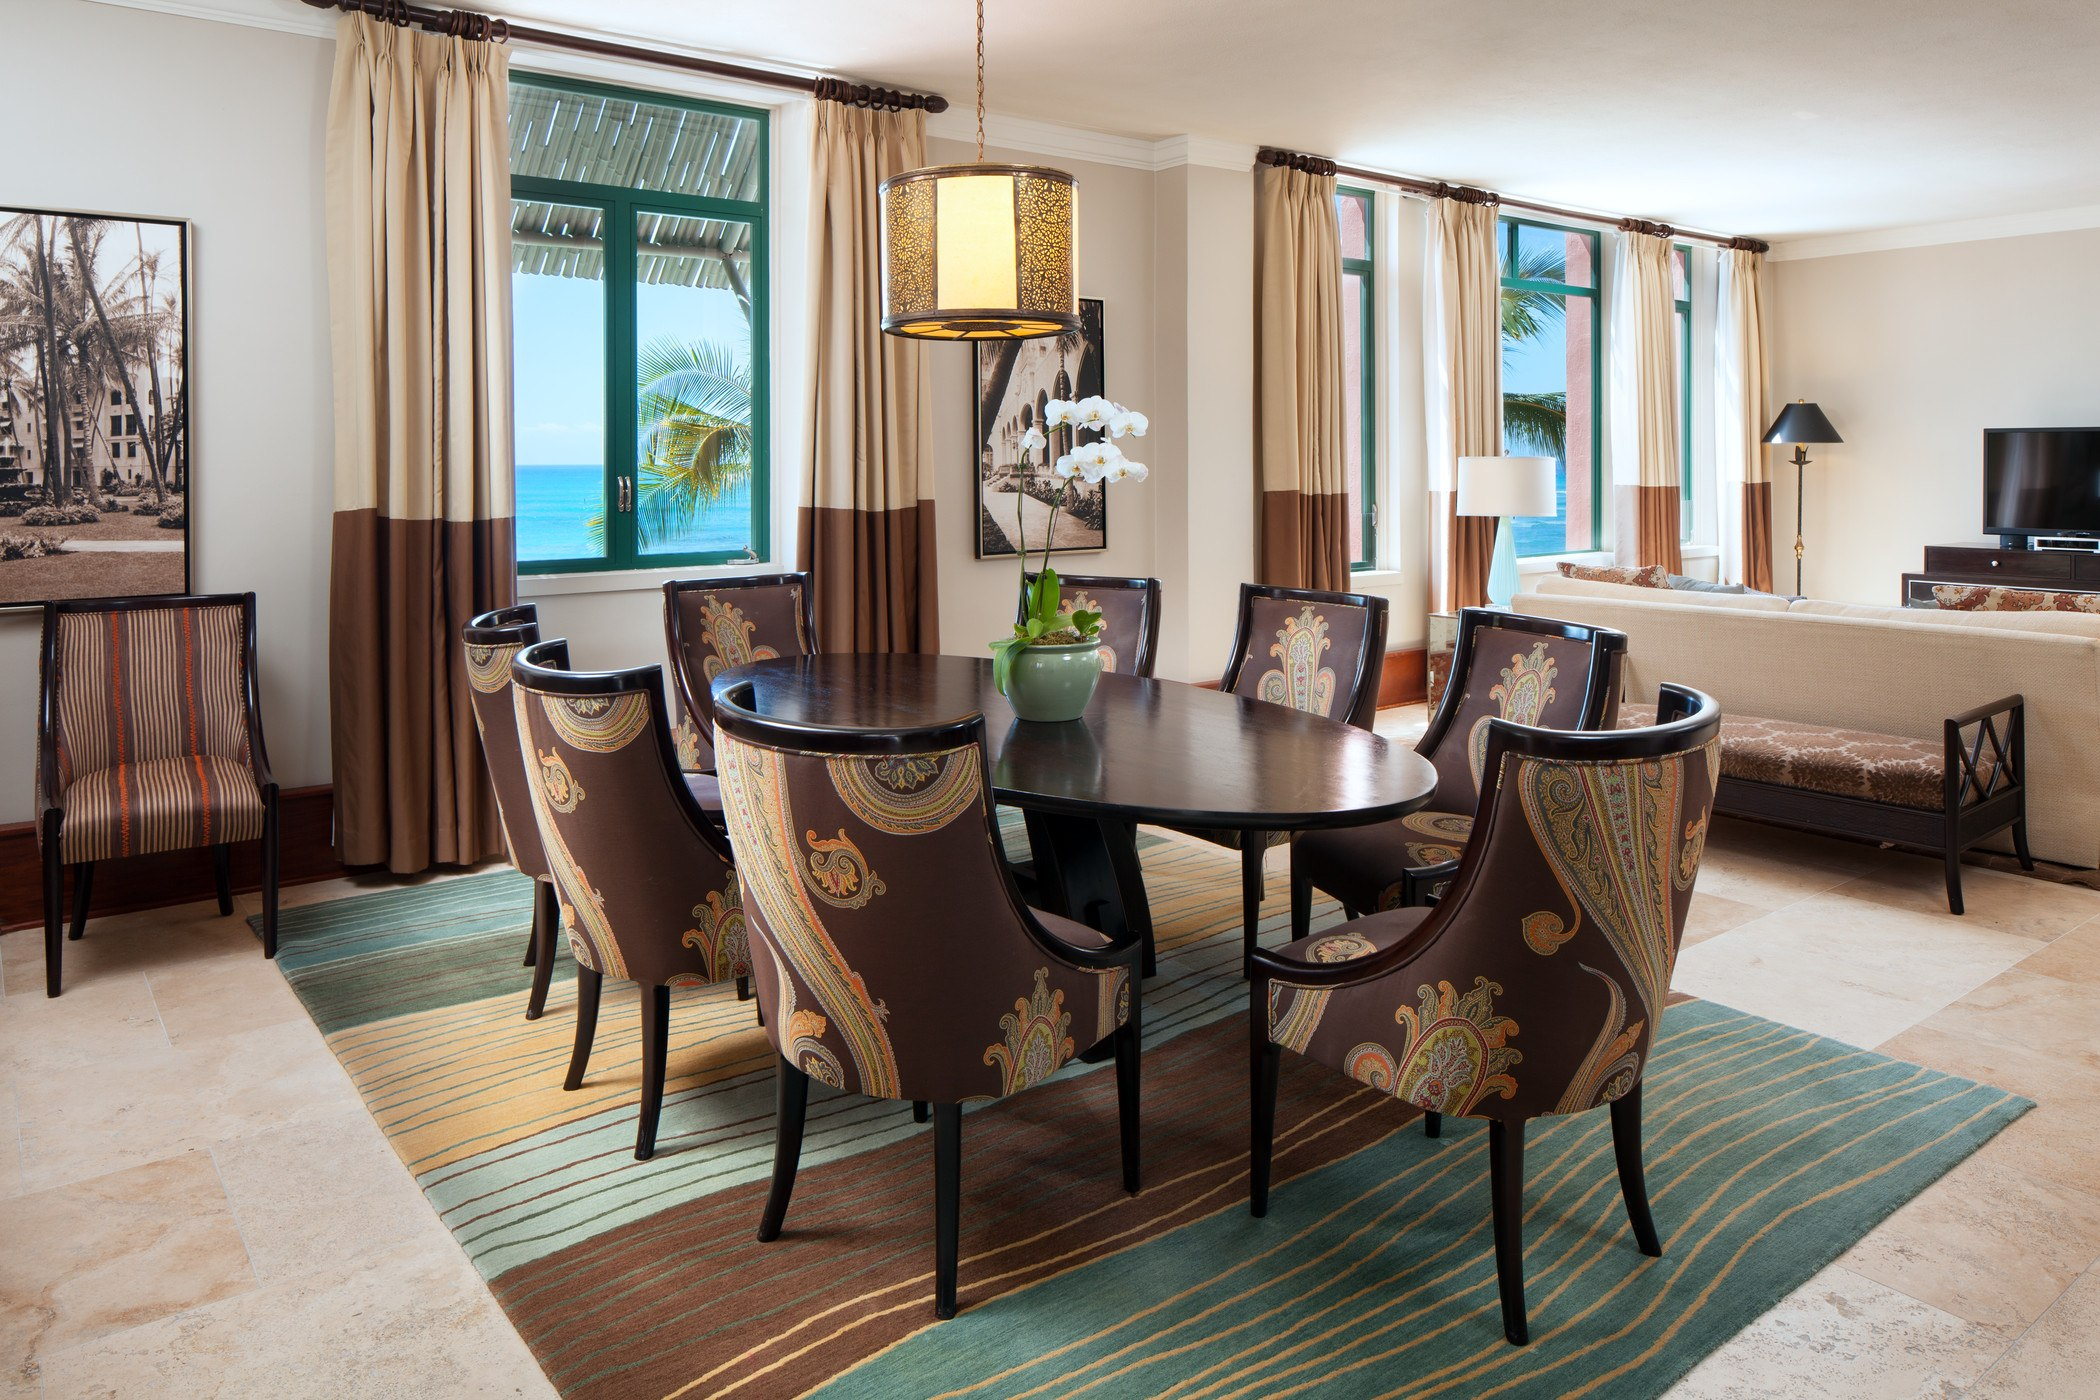 large modern luxury hotel suite dining room with table and 8 chairs, sitting area, and ocean view windows